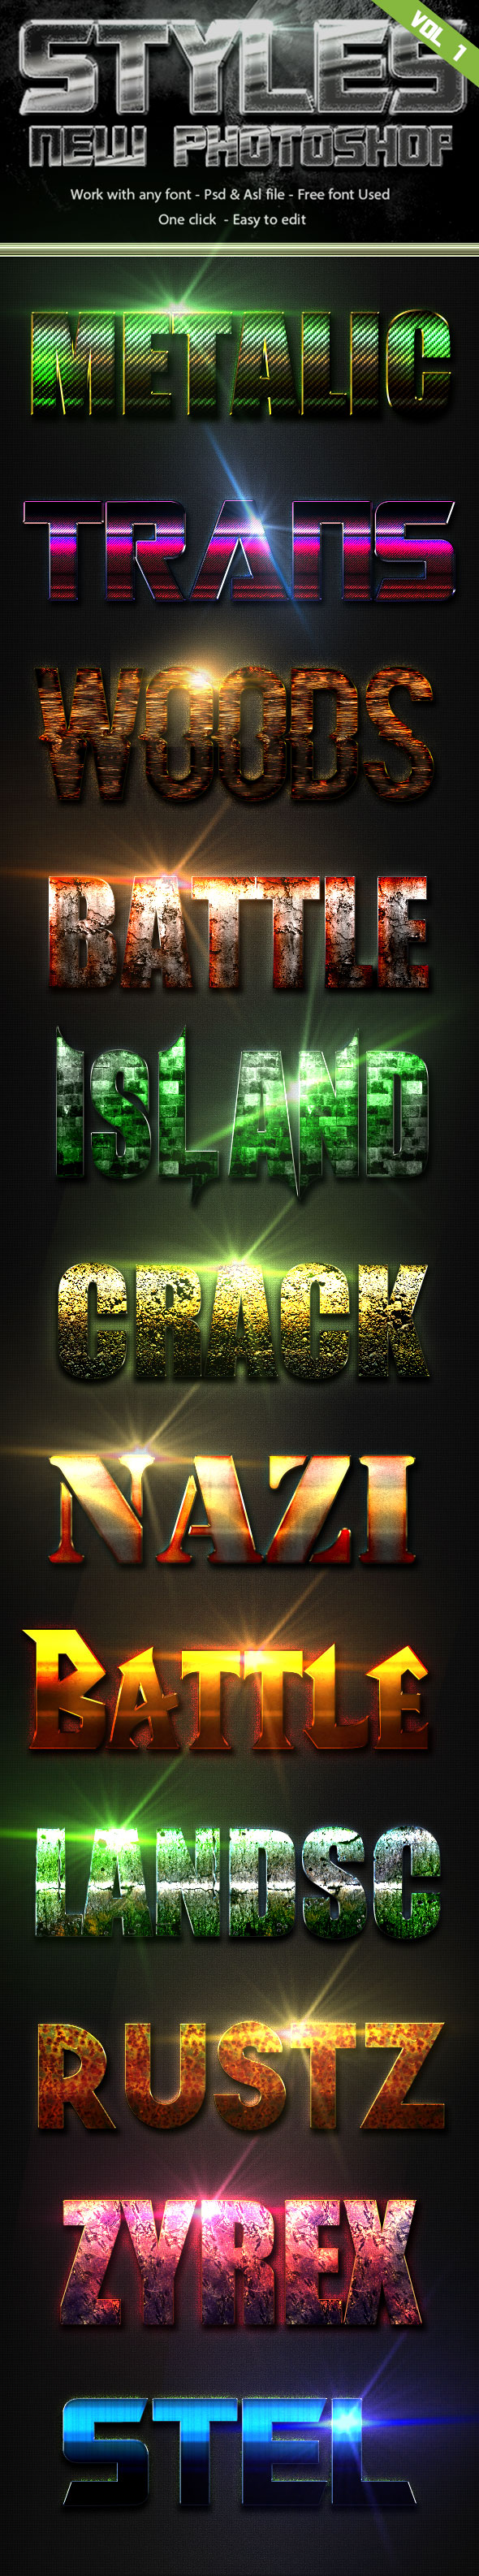 Styles New Photoshop Vol 1 - Text Effects Styles